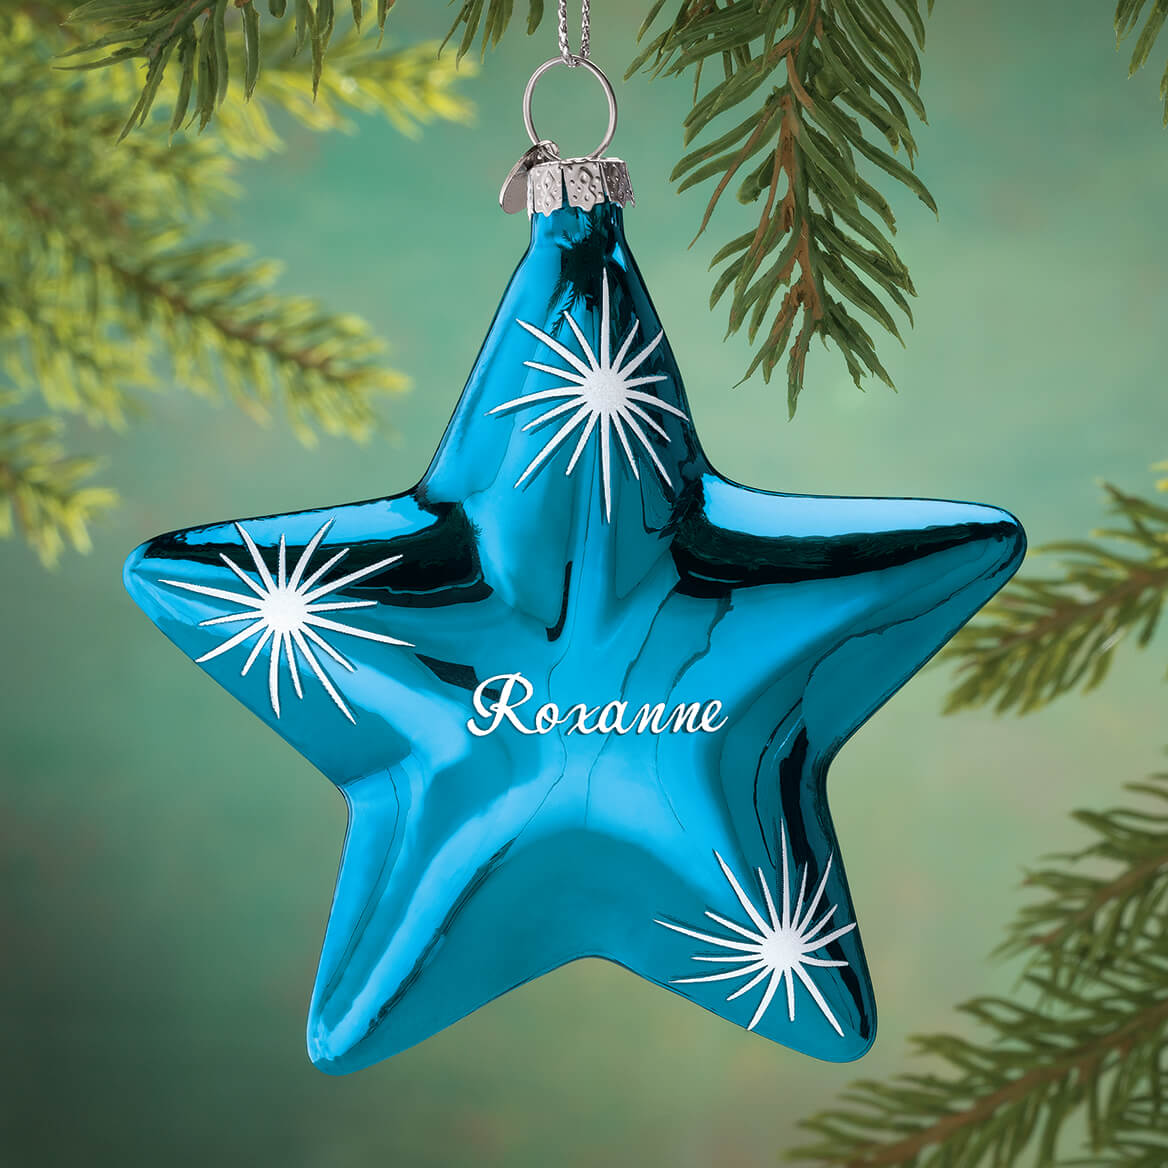 827a91b72fb64 Personalized Birthstone Star Ornament-352826 Personalized Birthstone Star  Ornament-352826